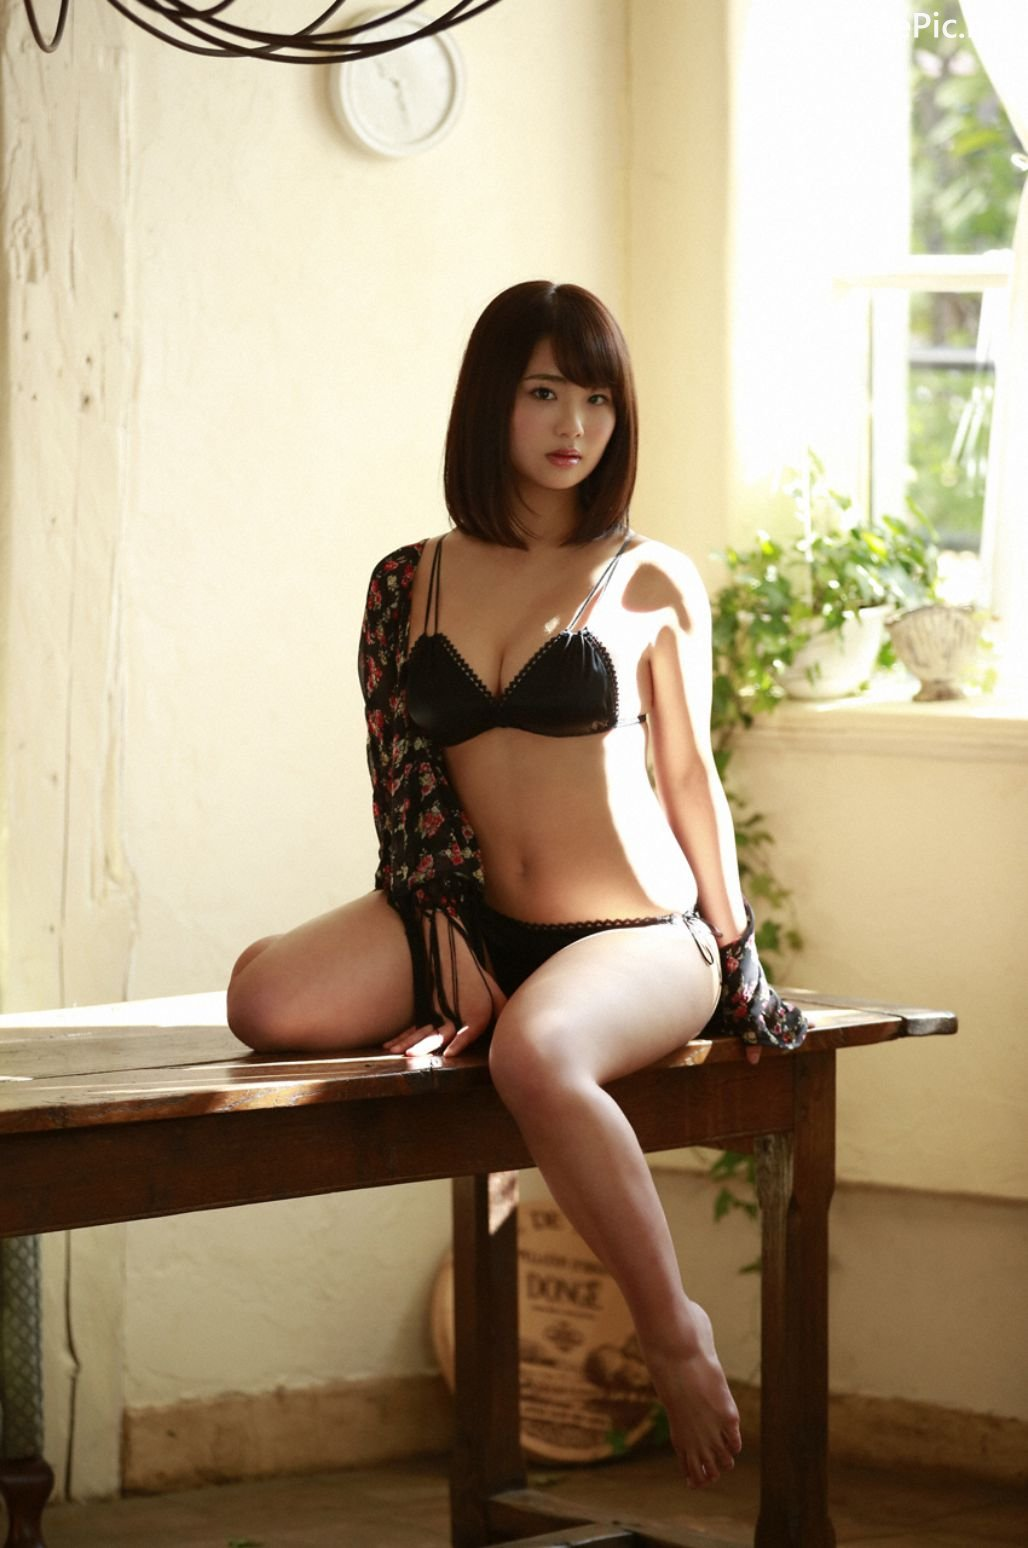 Image-Japanese-Actress-And-Model-Natsumi-Hirajima-Sexy-Lingerie-Queen-TruePic.net- Picture-1